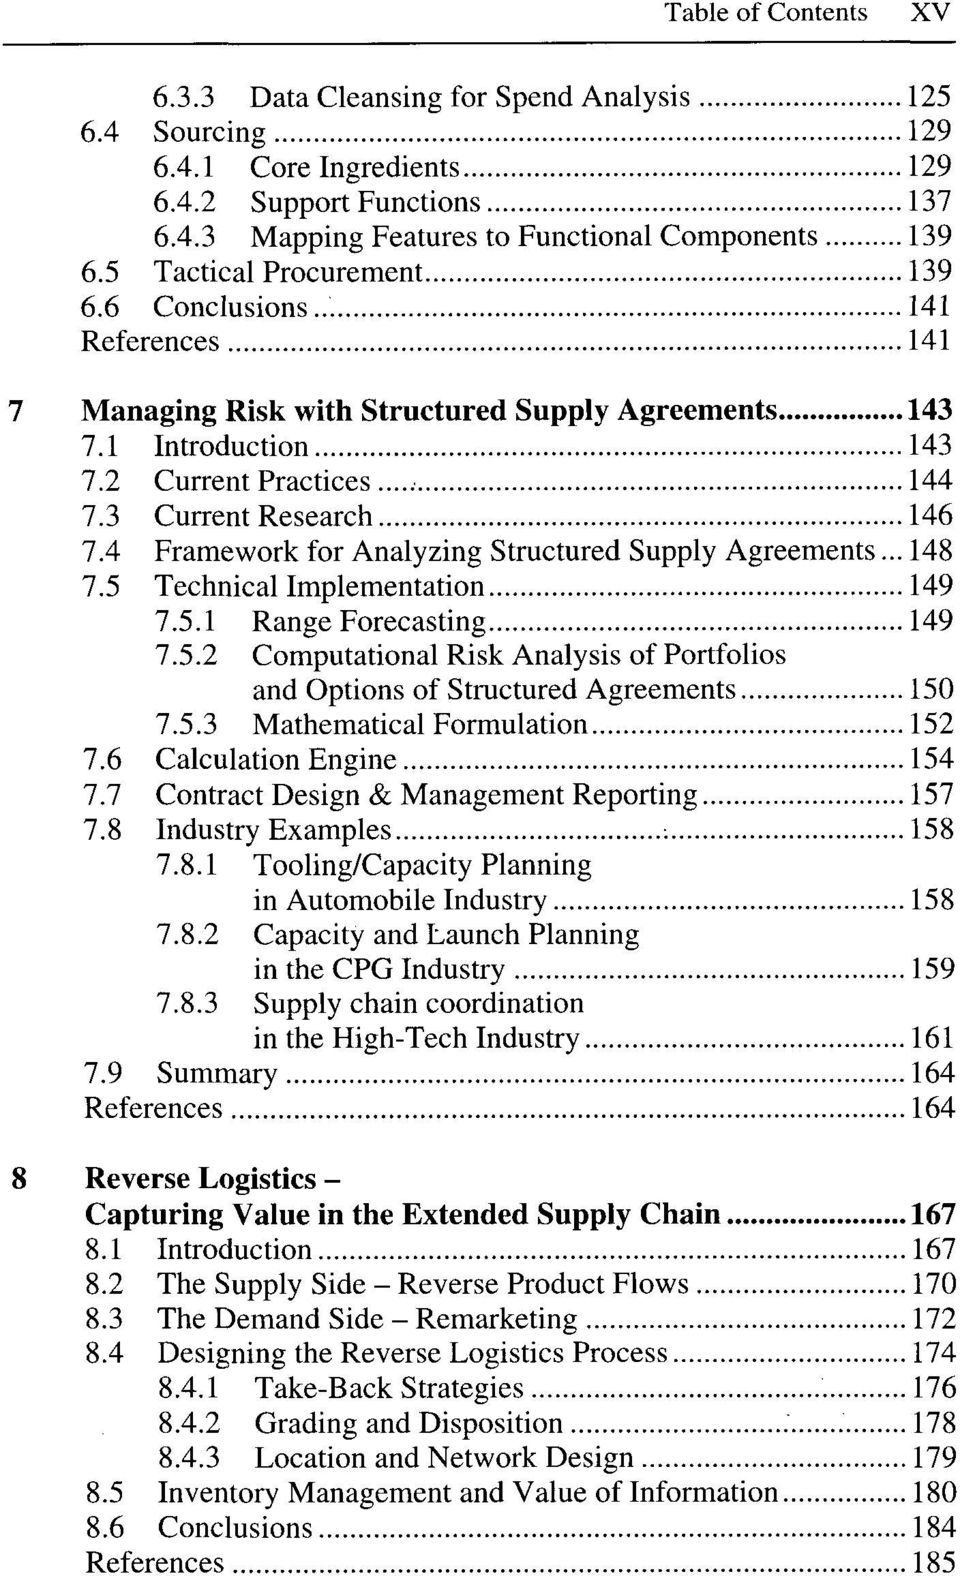 4 Framework for Analyzing Structured Supply Agreements... 148 7.5 Technical Implementation 149 7.5.1 Range Forecasting 149 7.5.2 Computational Risk Analysis of Portfolios and Options of Structured Agreements 150 7.